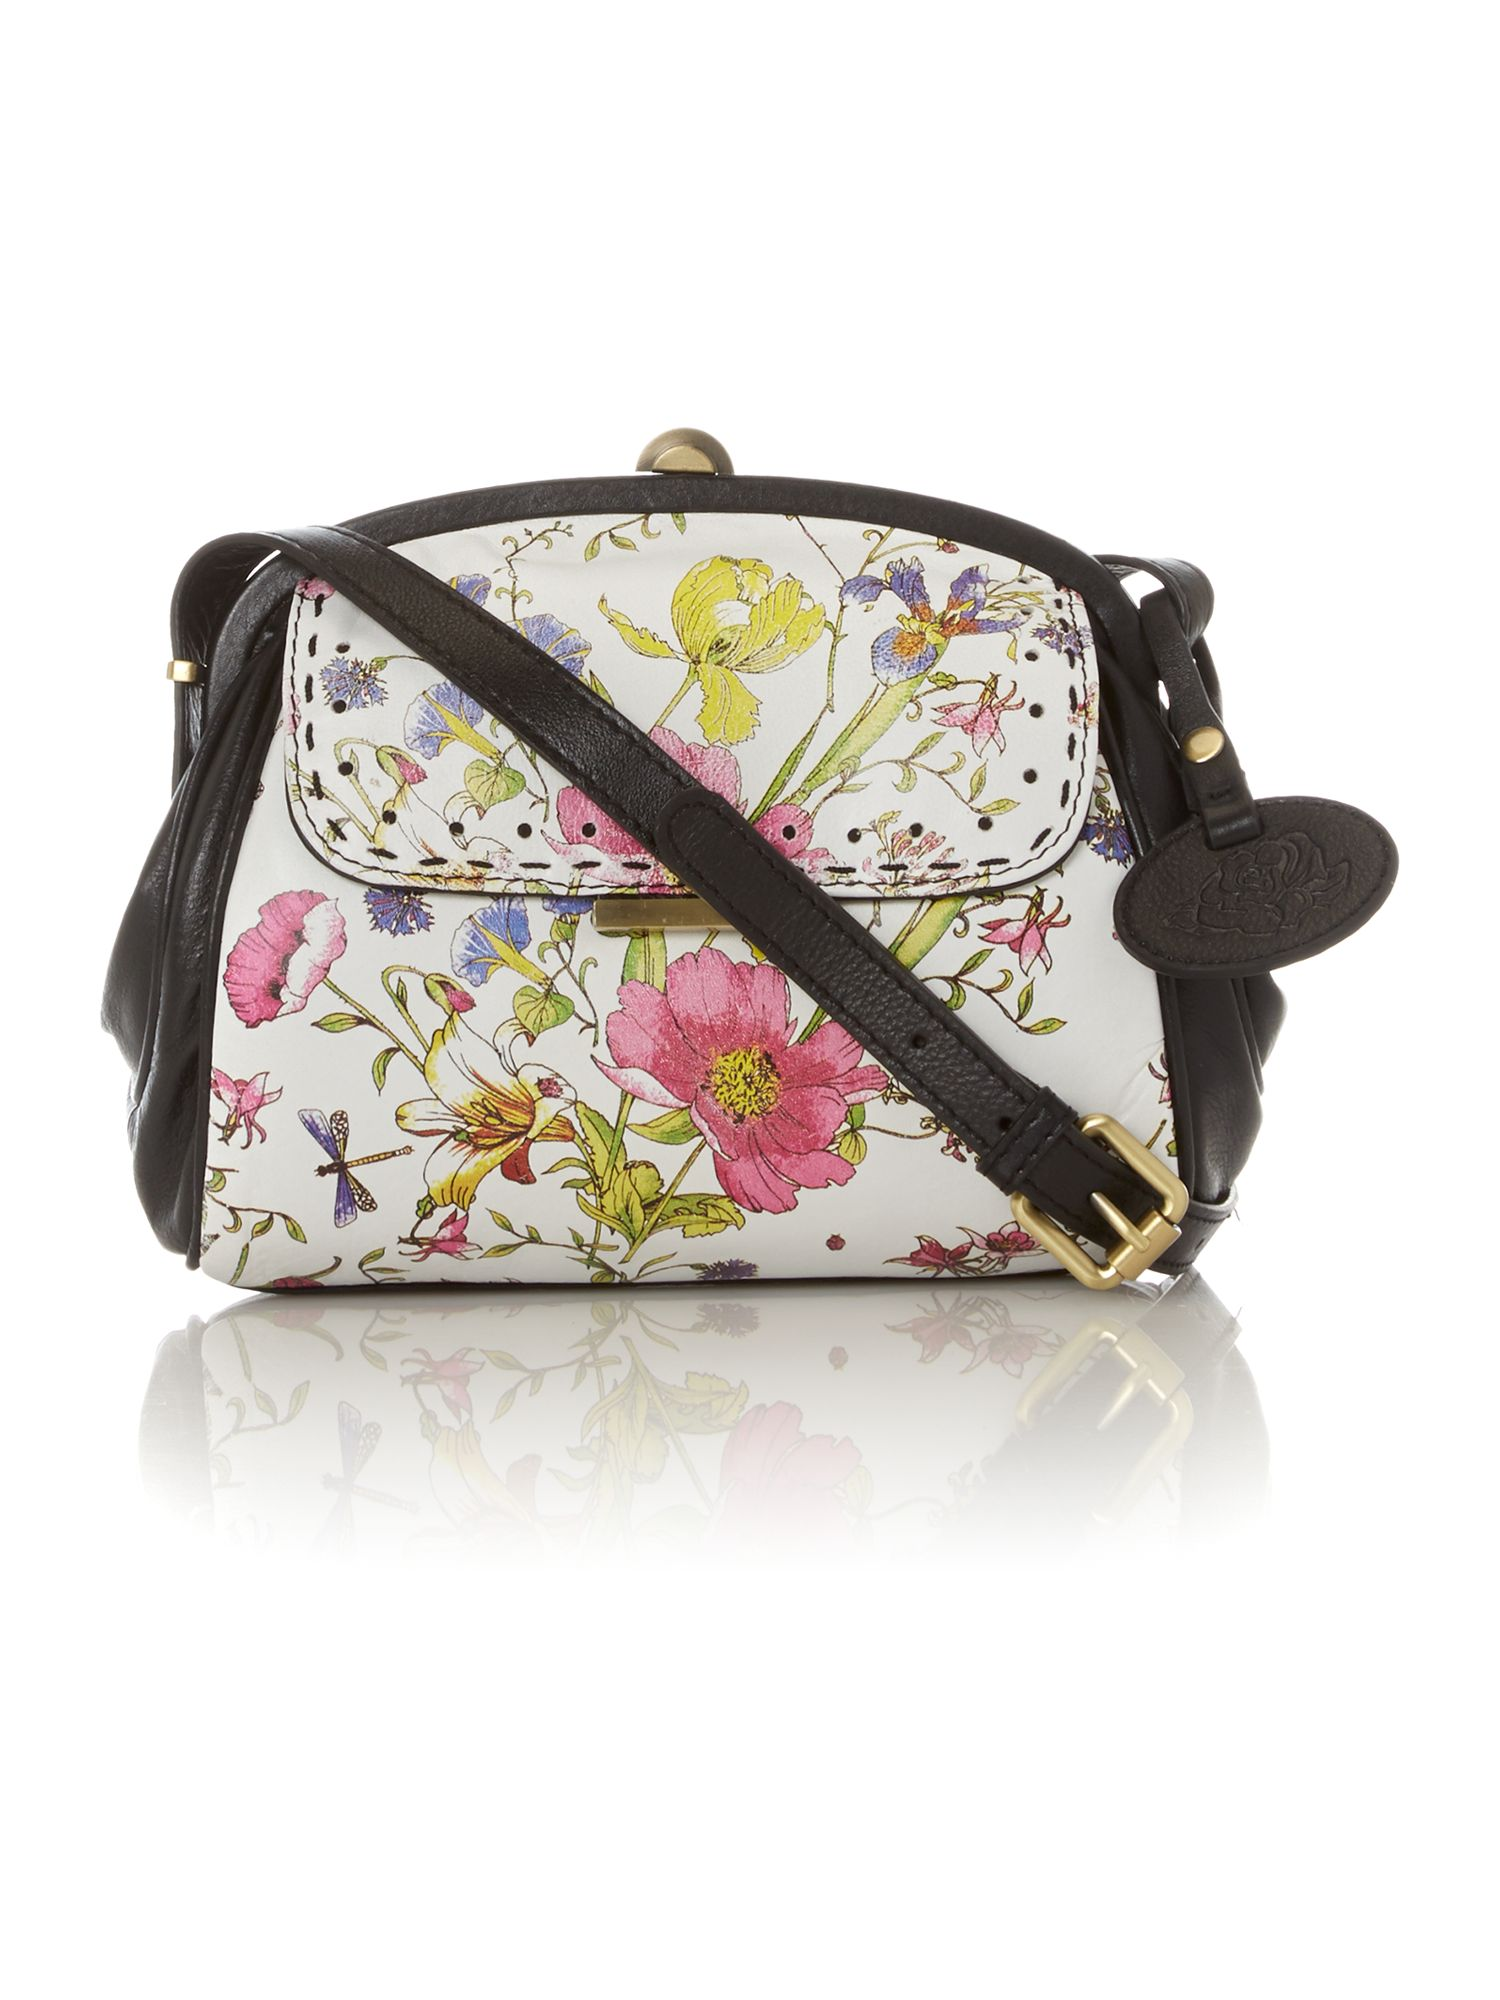 Thistle cross body frame bag